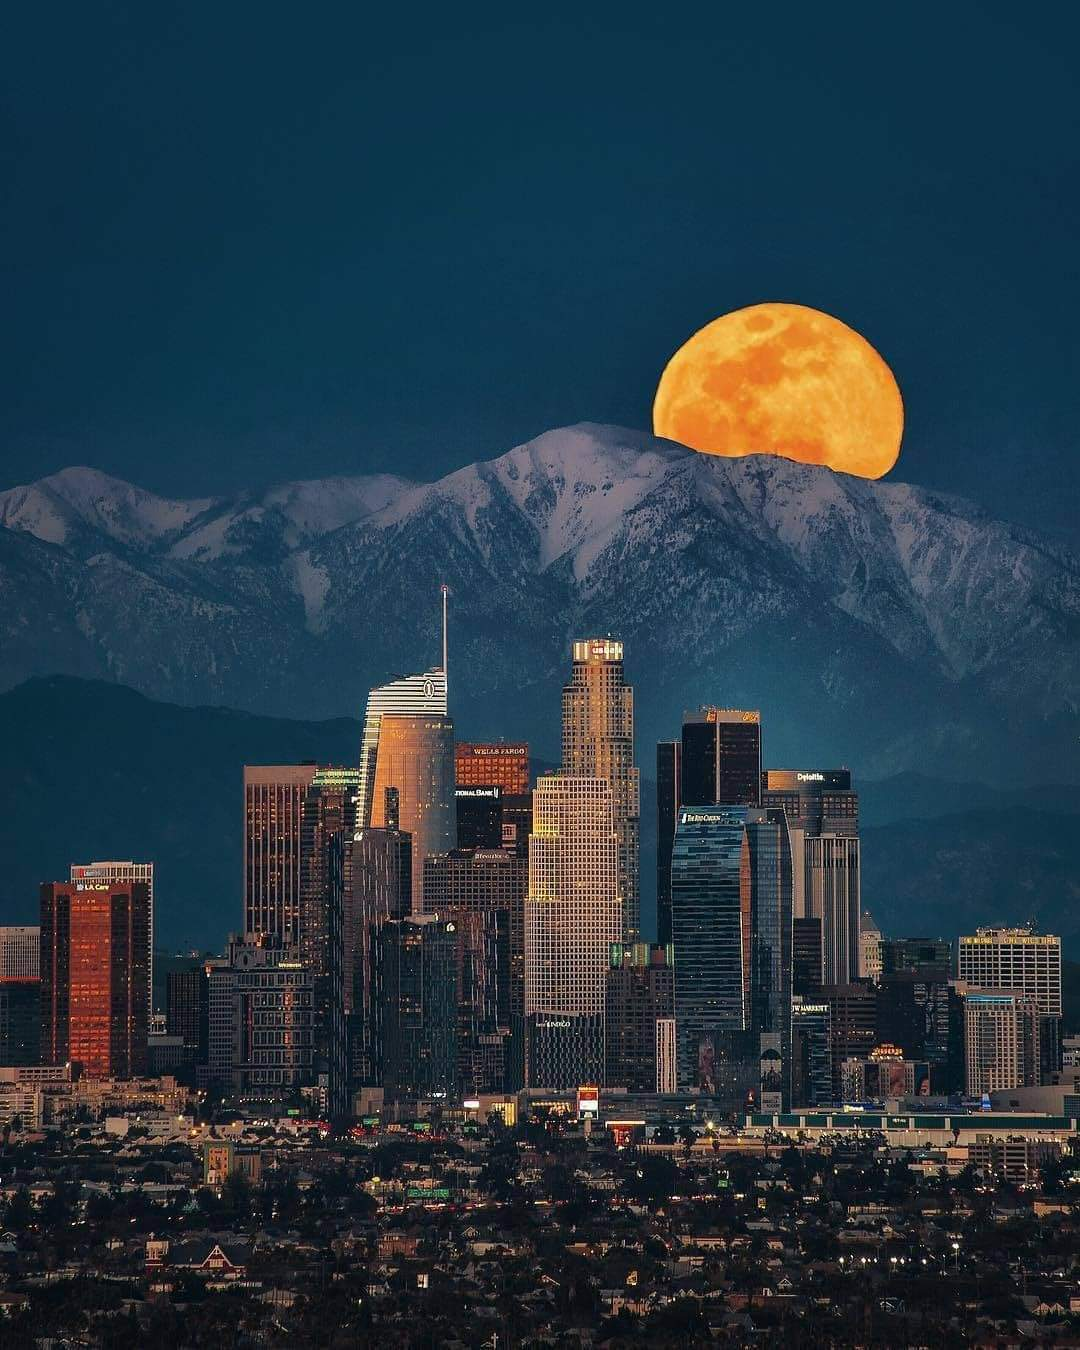 Moonrise in Los Angeles, California.